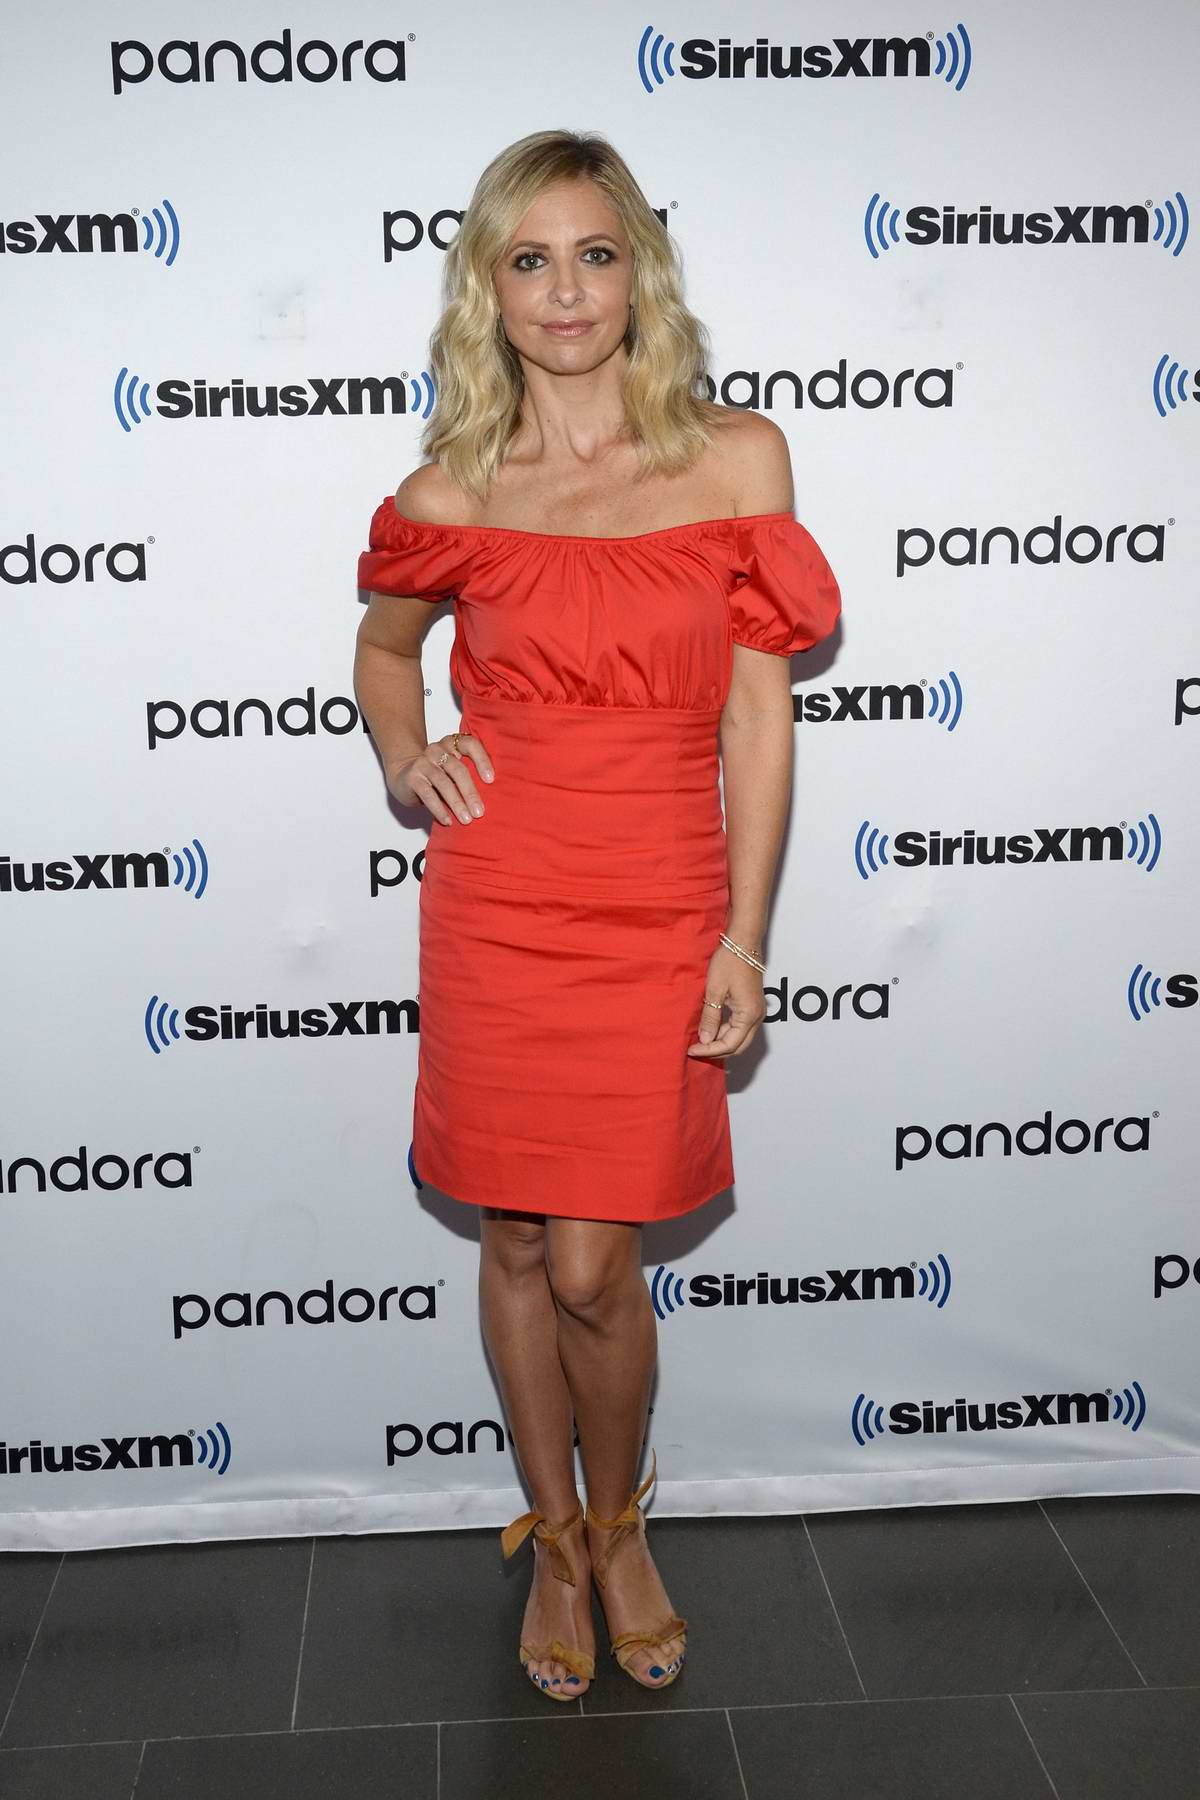 Sarah Michelle Gellar visits SiriusXM Studios in New York City